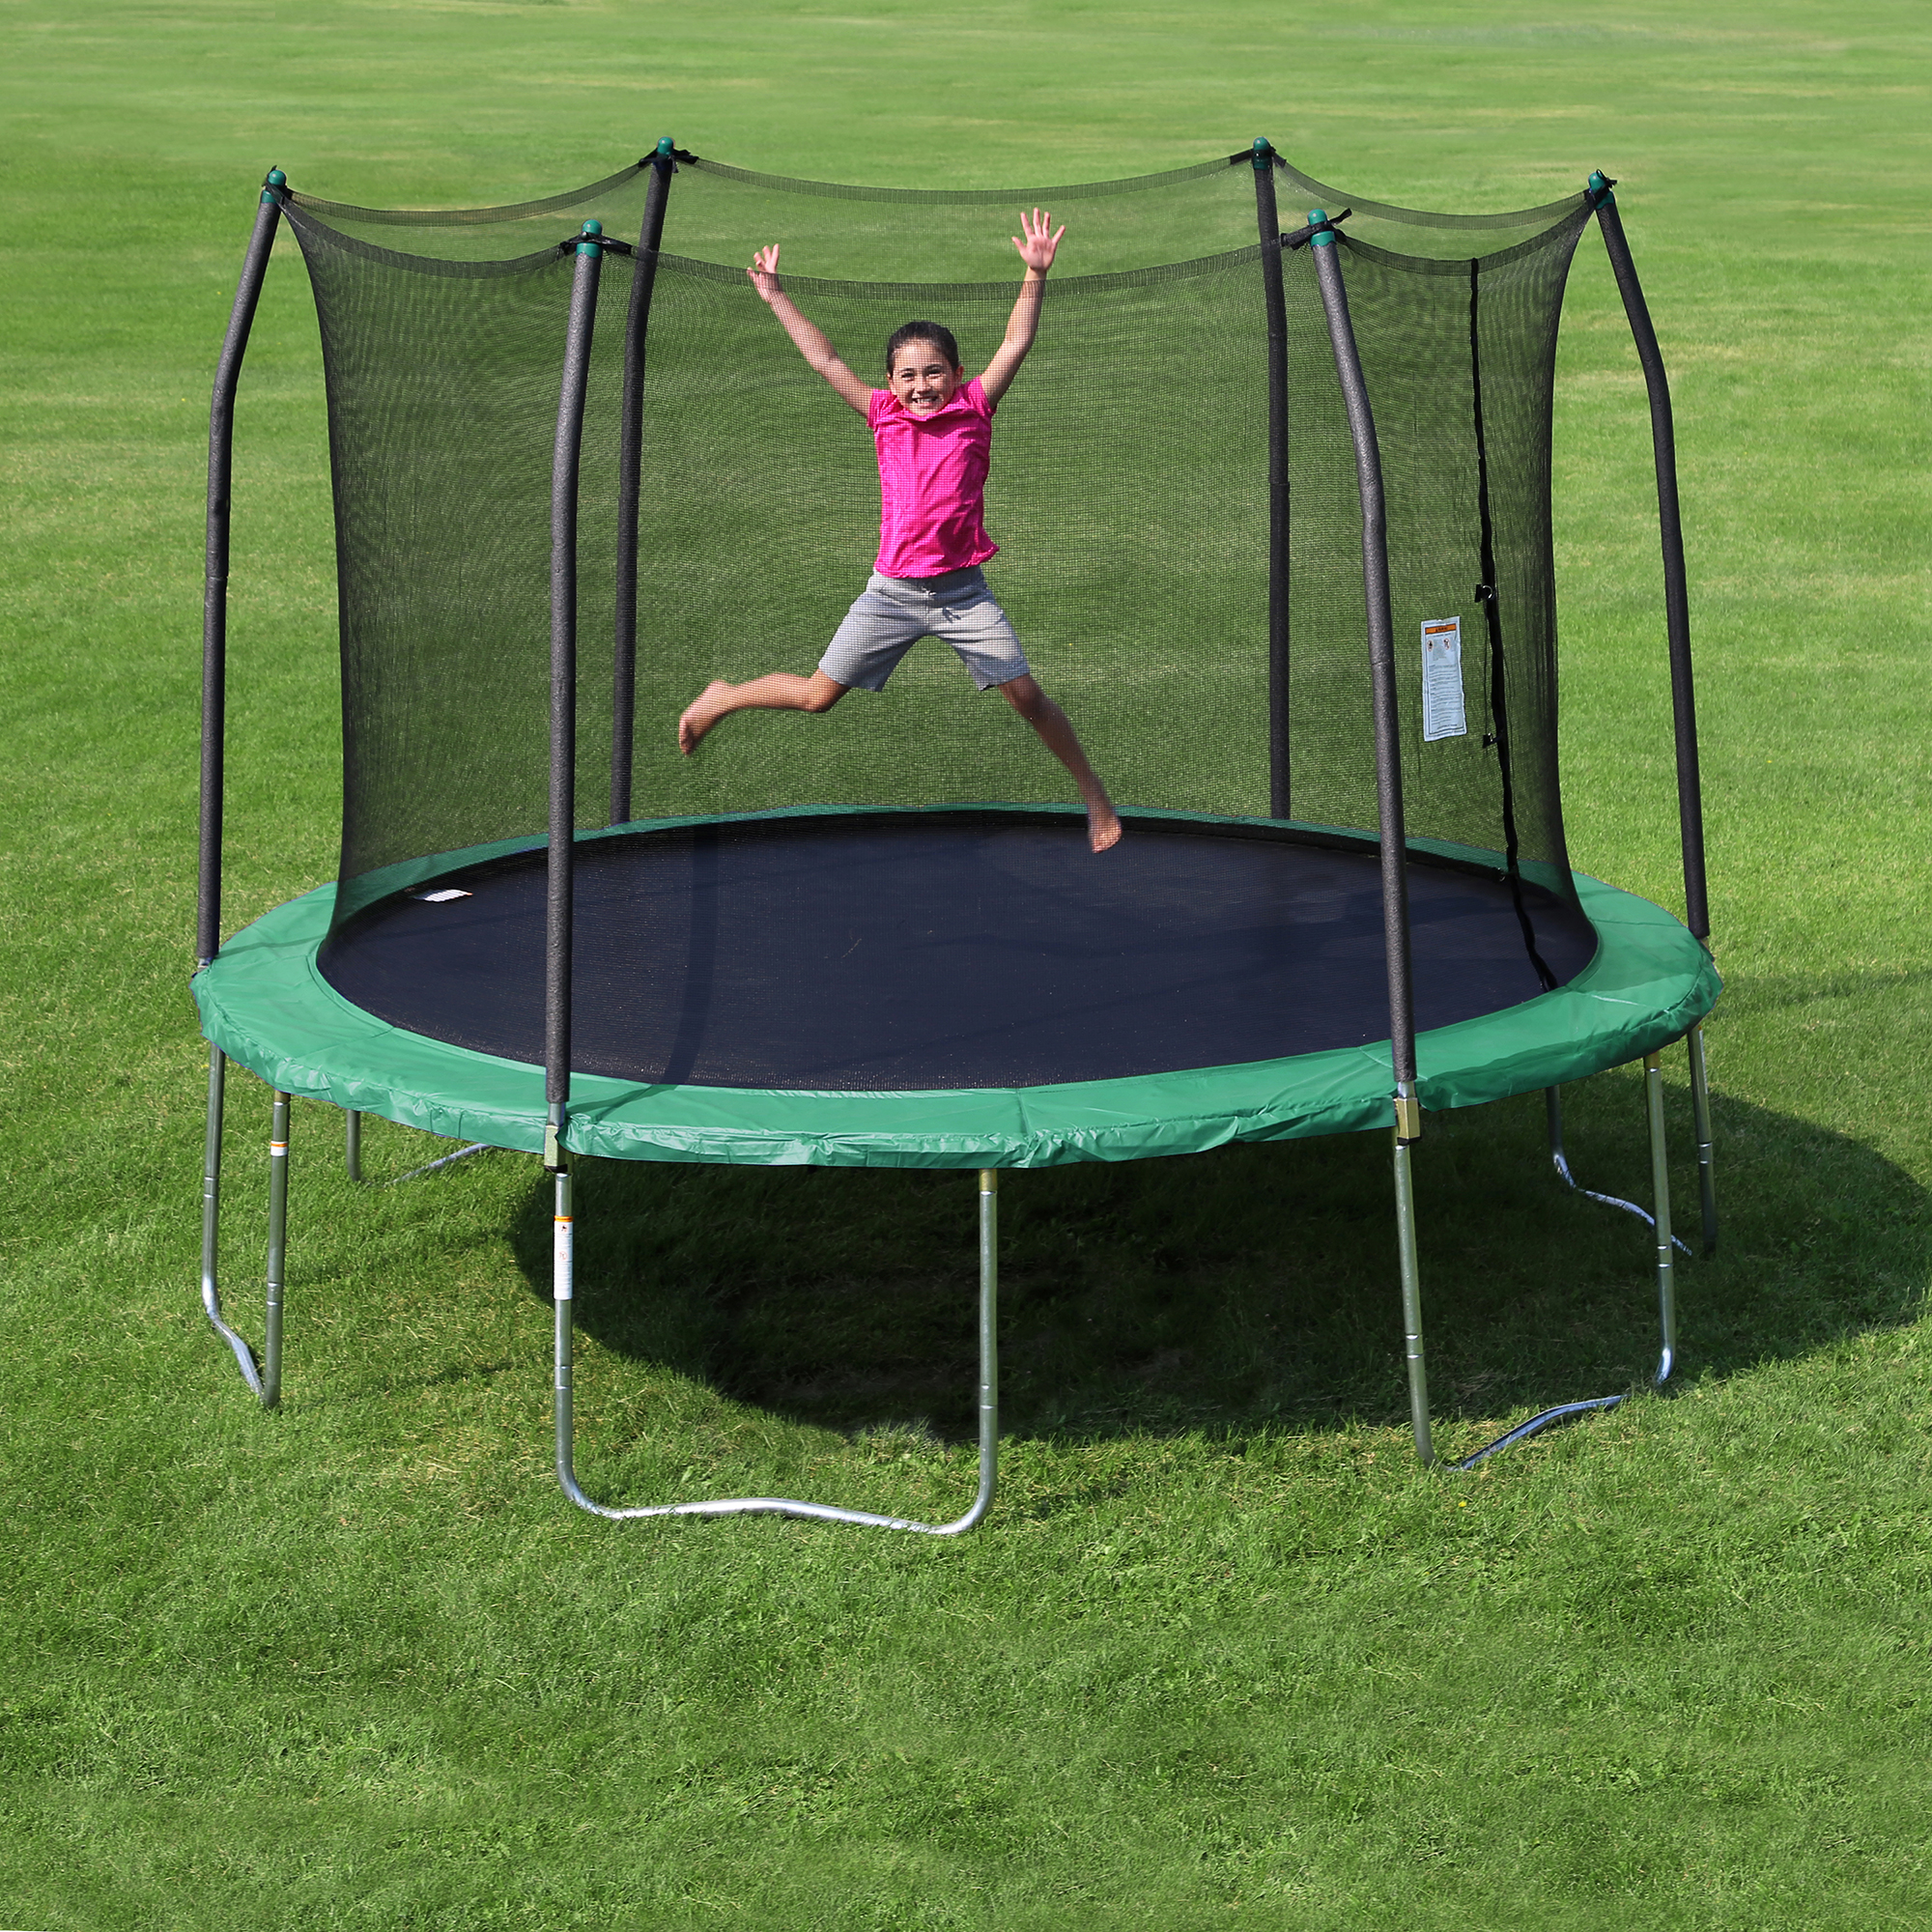 Skywalker Trampolines 12 Foot Outdoor Trampoline With Enclosure Green